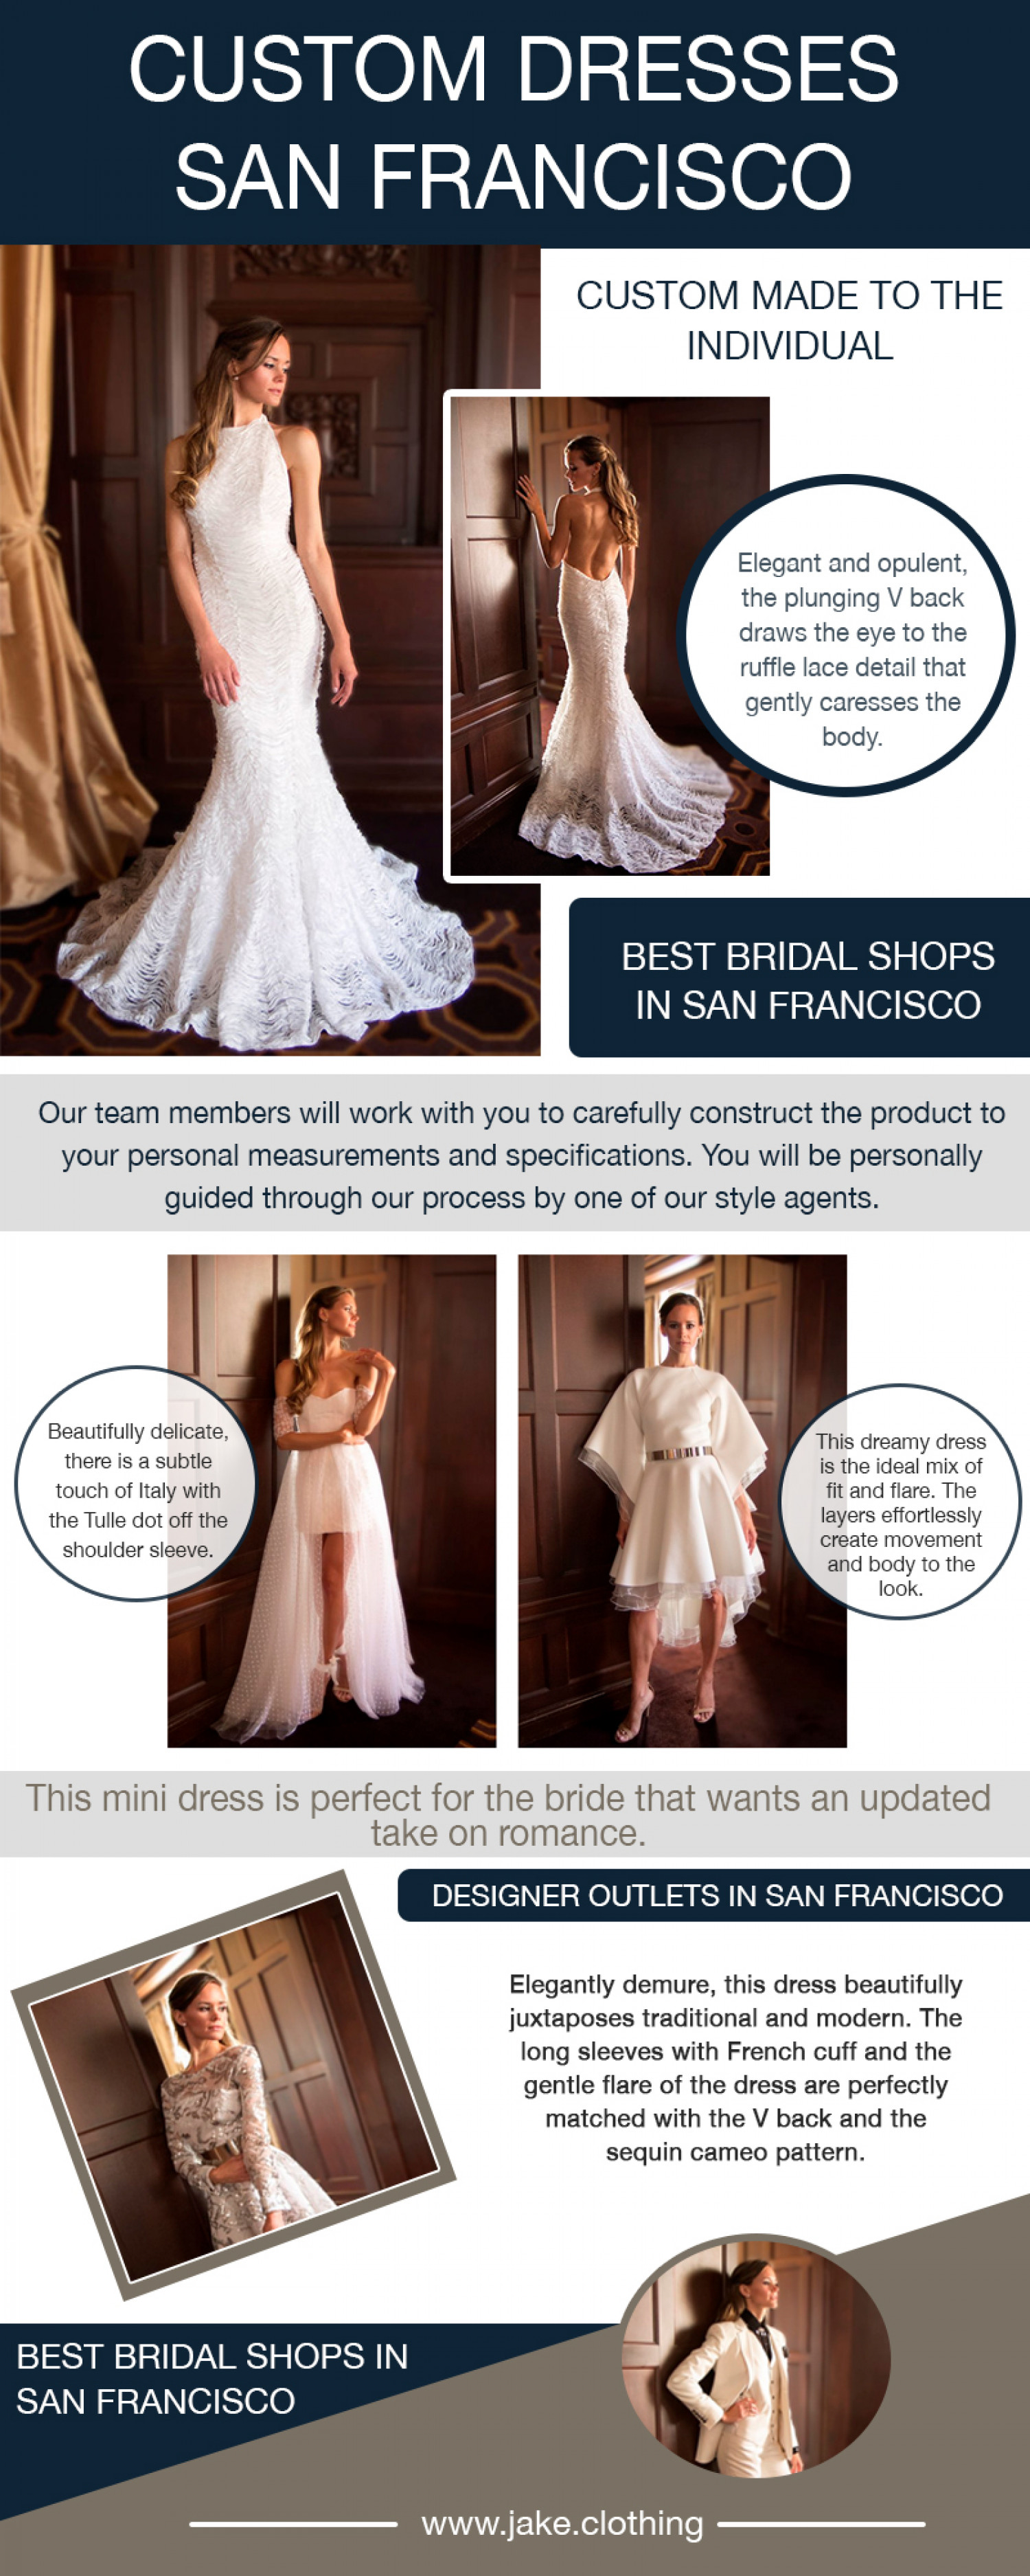 custom dresses san francisco Infographic